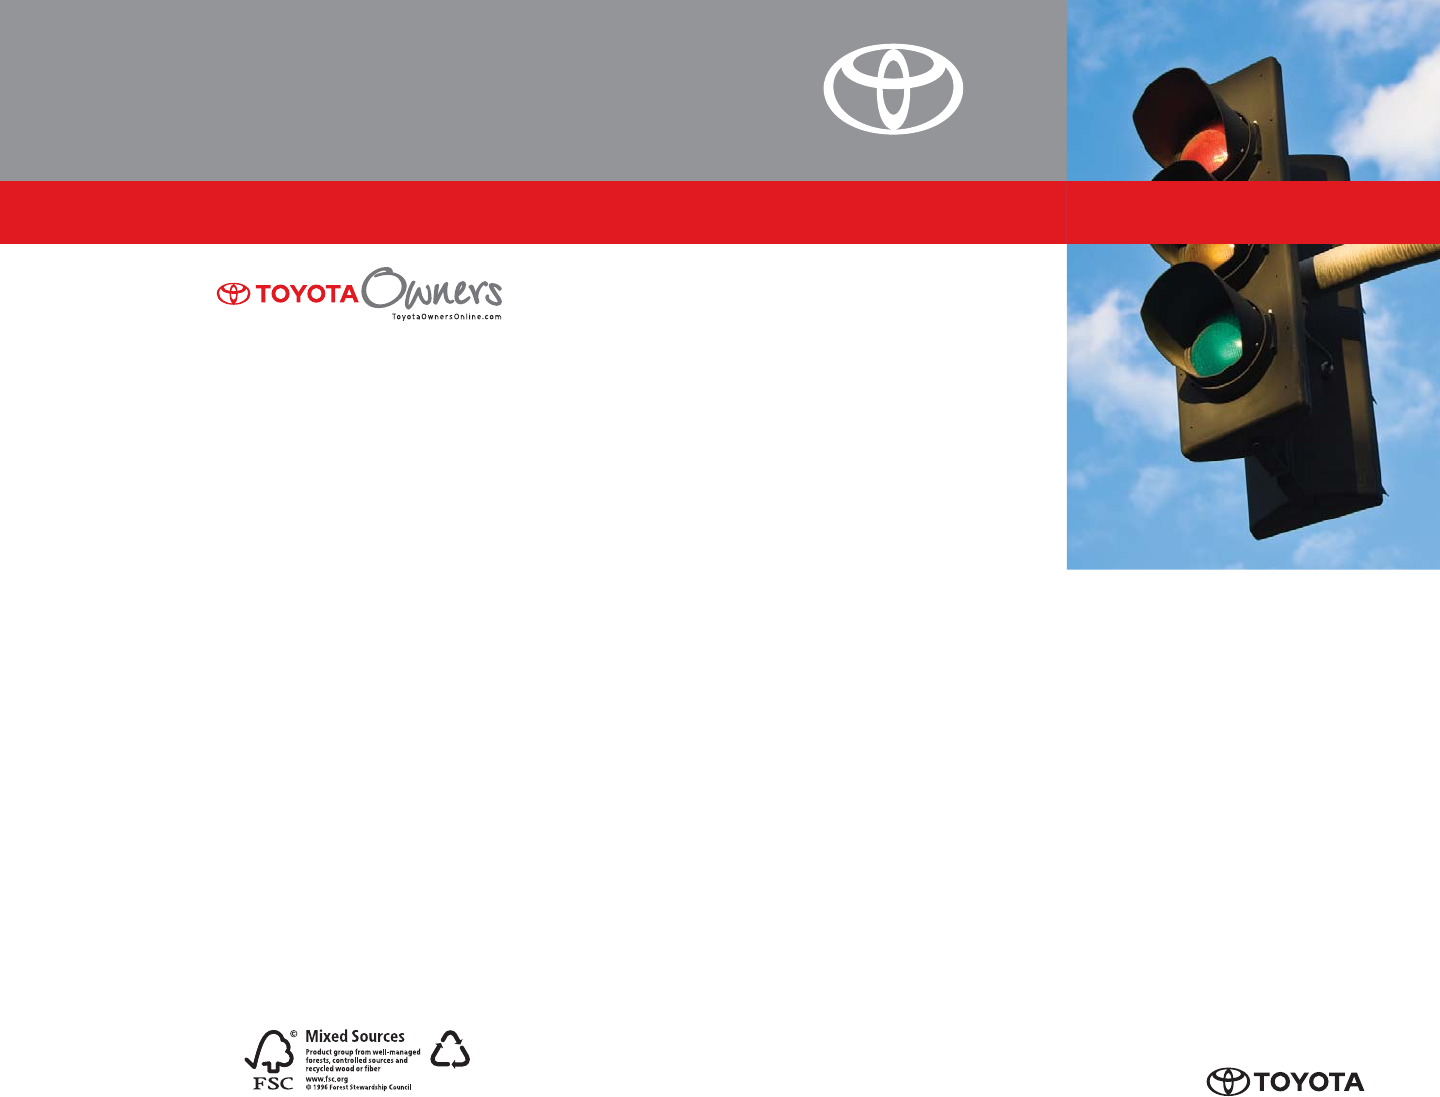 2010 toyota yaris hatchback owners manual pdf rh manuals co 2010 toyota yaris repair manual 2010 toyota yaris repair manual pdf